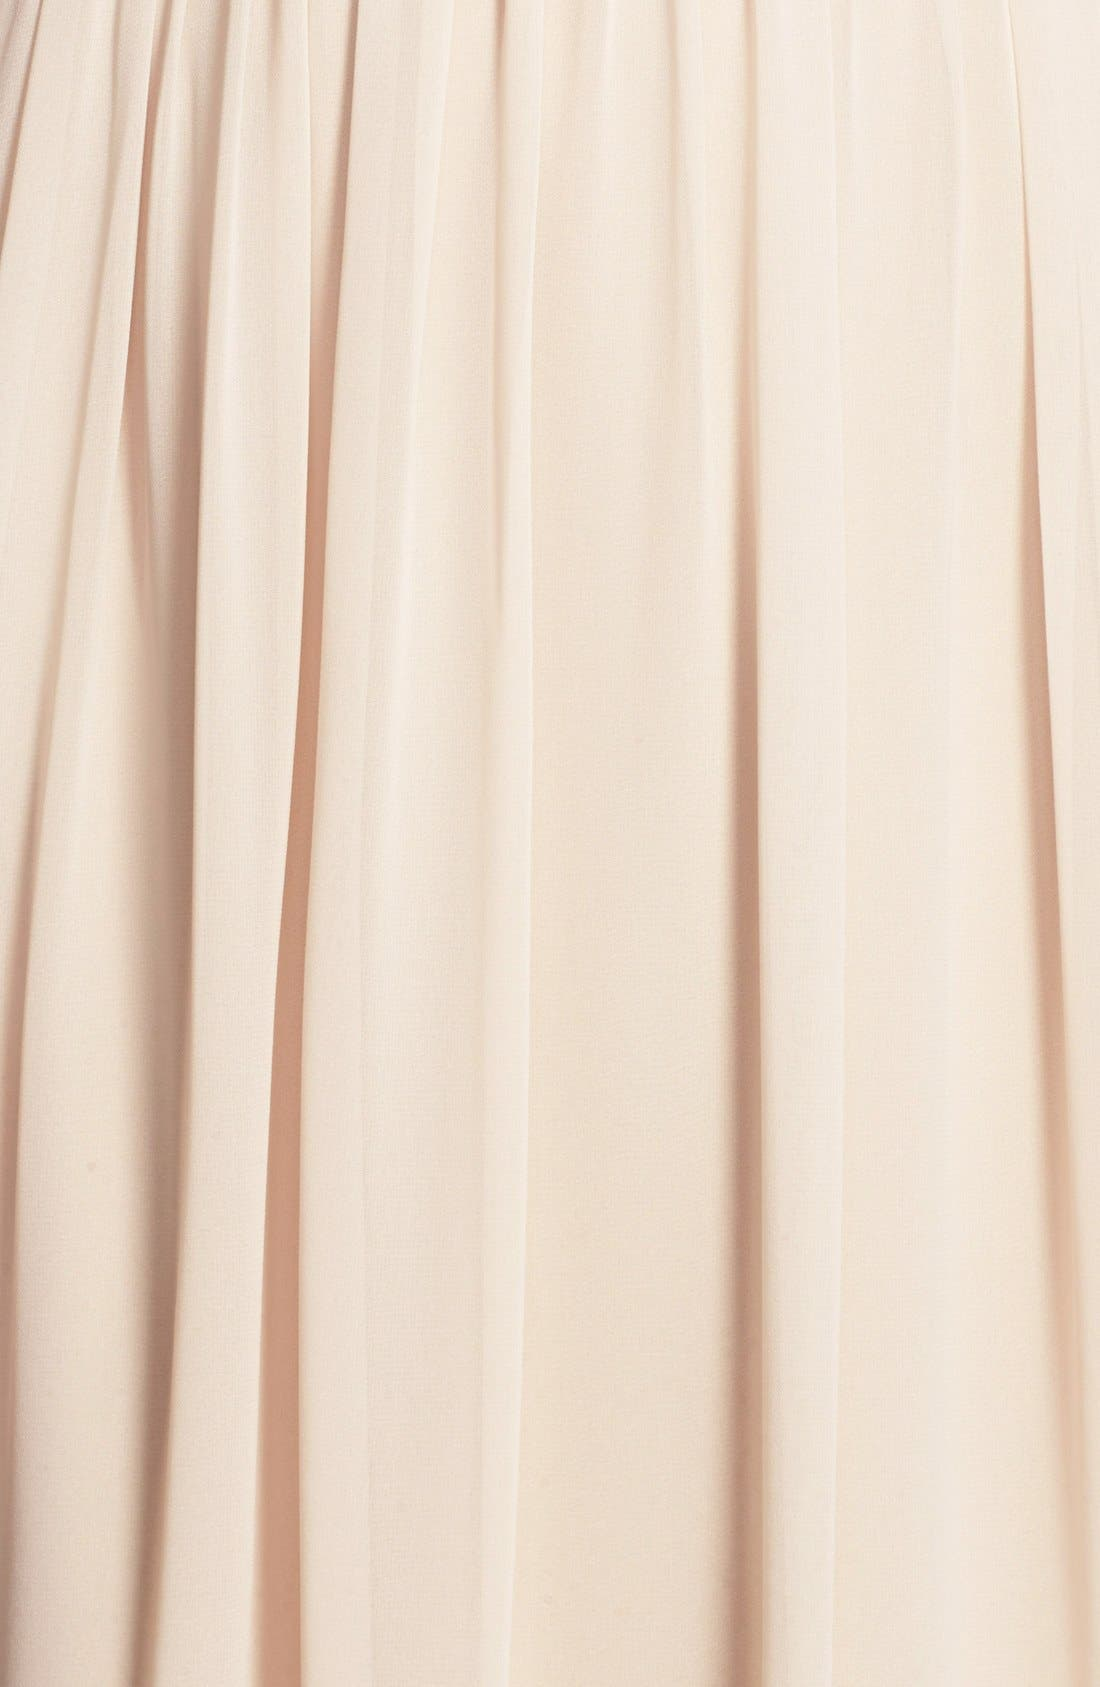 Alternate Image 3  - Monique Lhuillier Bridesmaids Strapless Ruched Chiffon Sweetheart Gown